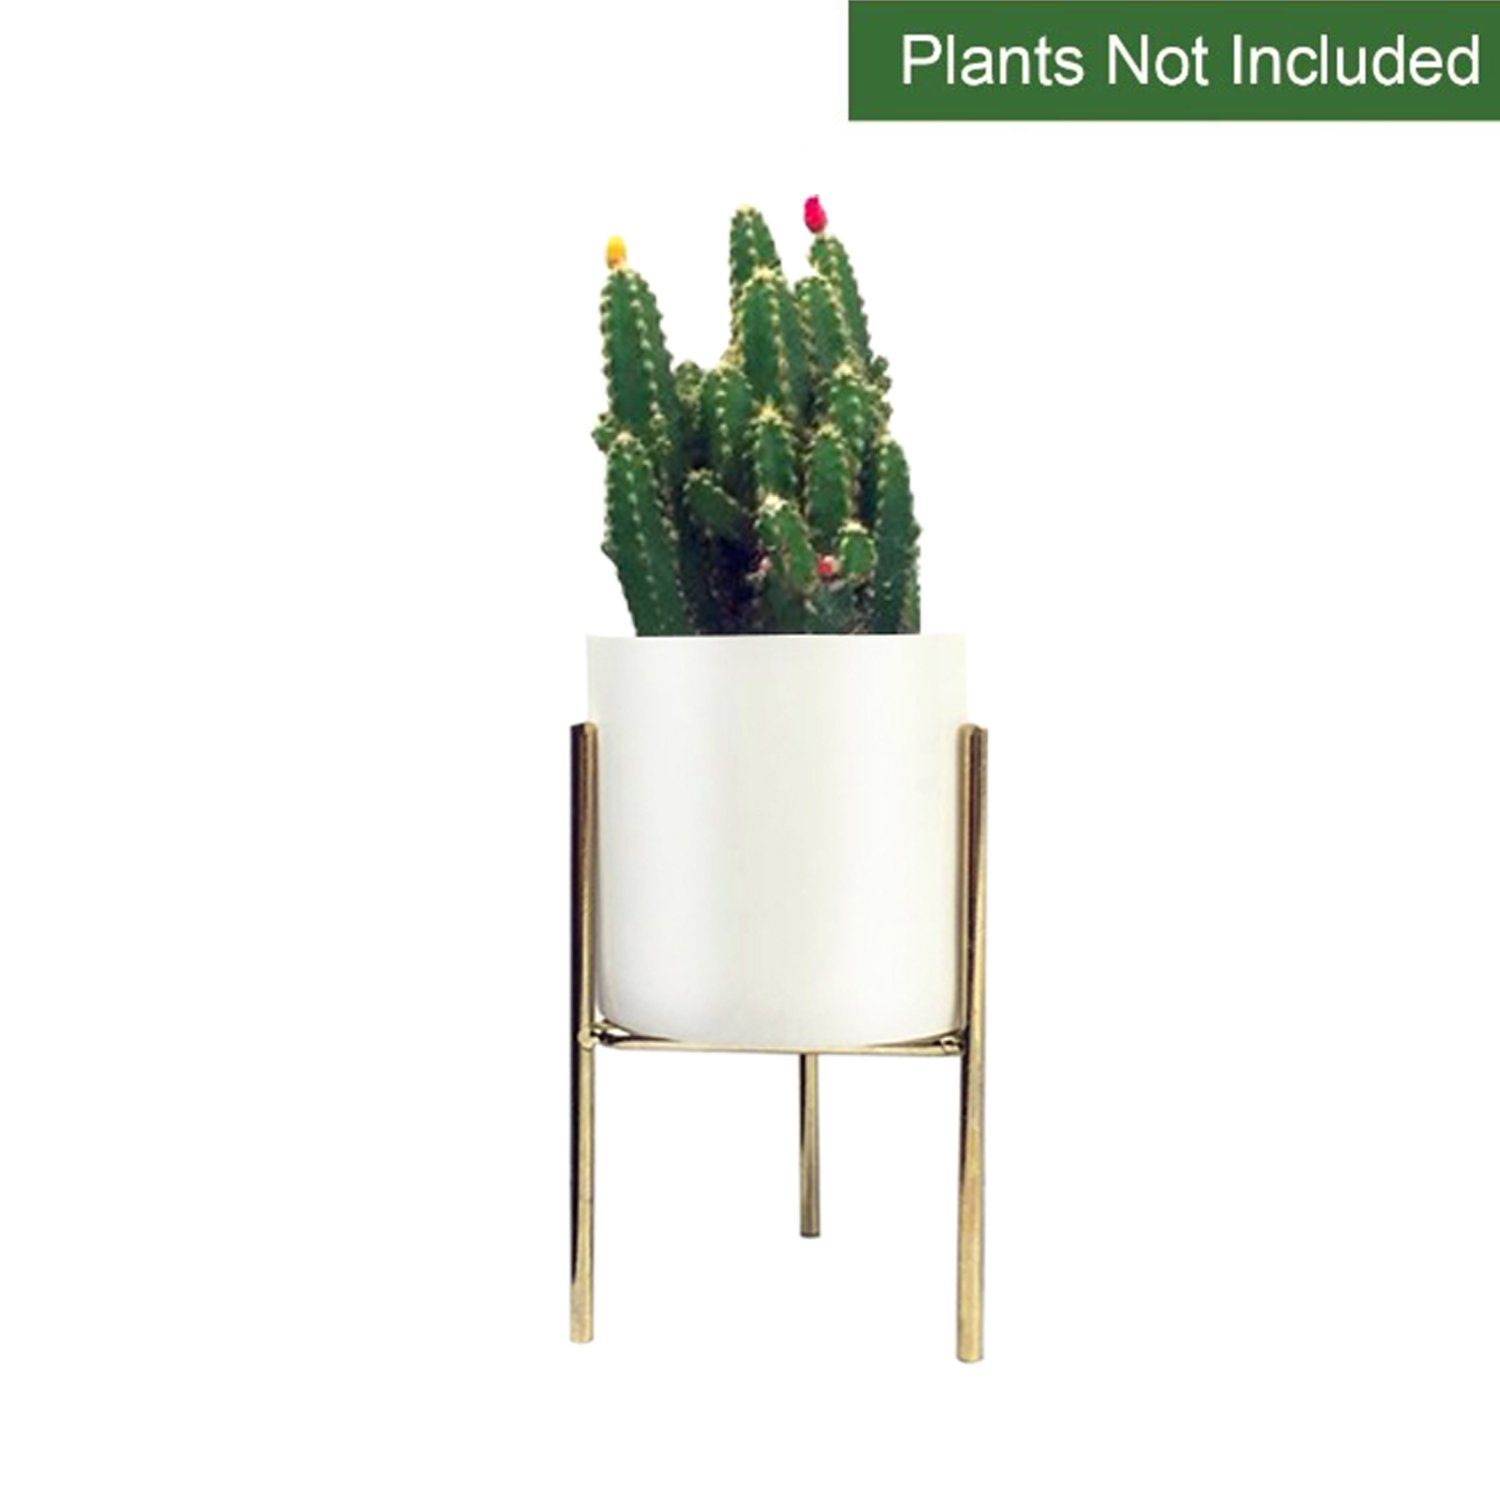 CUUCOR 3.1 inch Modern Garden White Ceramic Round Plant pot with Metal Stand, Mid Century Small Indoor Plant Holder for Air Plants/Succulent Plants/Artificial Flowers/Mini Cactus (White + Gold) by CUUCOR